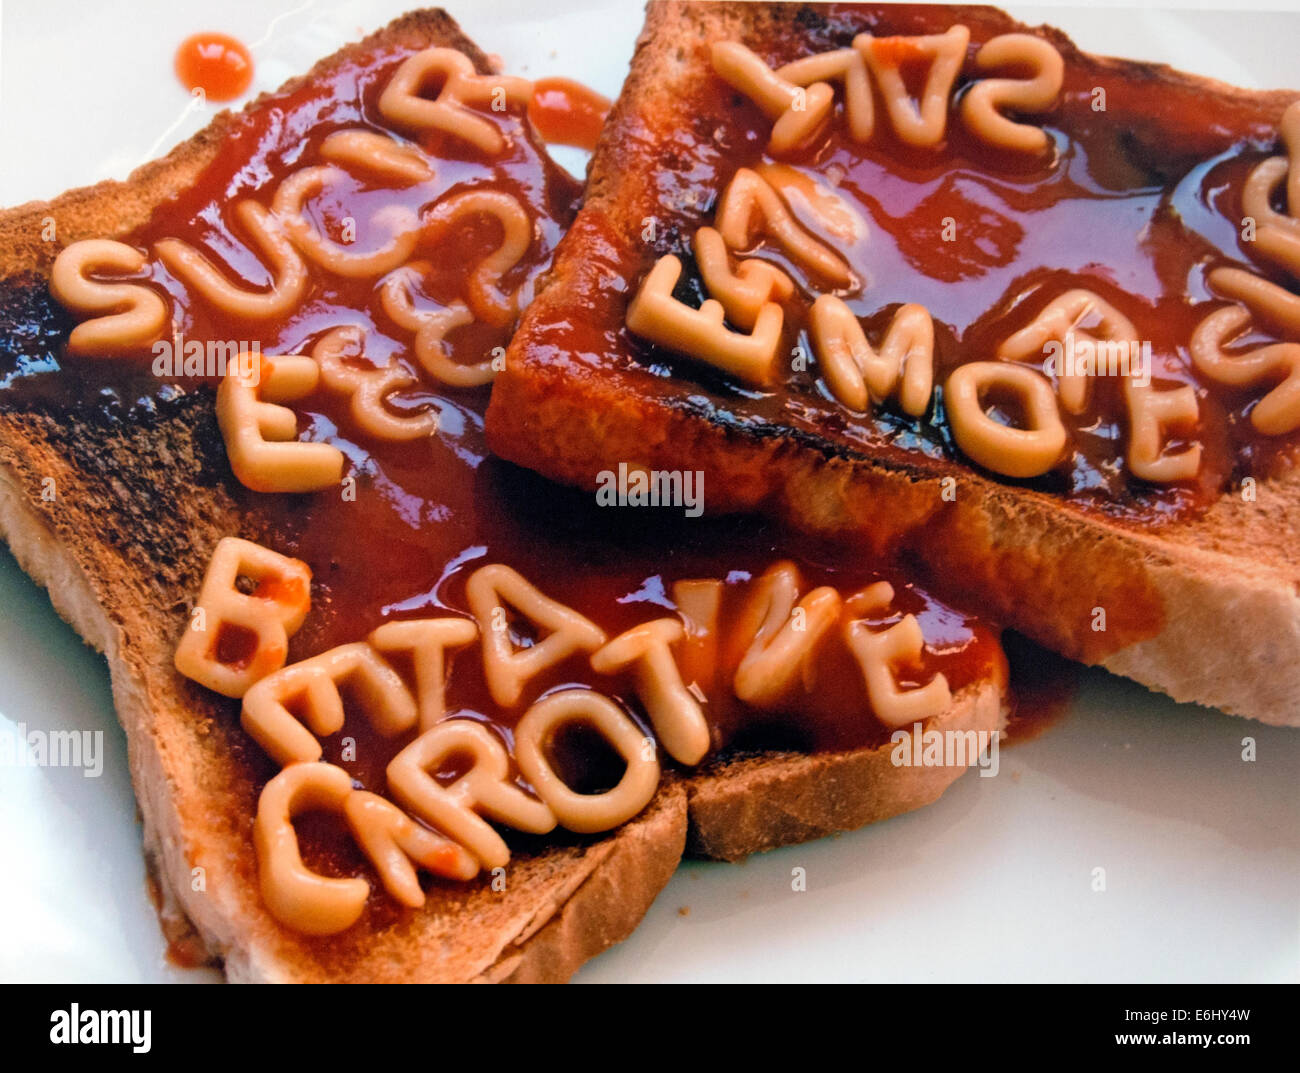 toast,pasta,letters,message,good,eating,health,healthy,eating,eat,western,diet,diets,bread,salt,E8,color,colours,cancer,danger,dangers,of,bad,cheap,carotine,US,UK,risk,risks,poor,NHS,national,health,service,overweight,over,weight,healthier,disease,and,disability,ill-health,illhealth,Gotonysmith Coronary Heart Disease,high blood pressure,non-insulin dependent diabetes,constipation,joint pain animal,Buy Pictures of,Buy Images Of